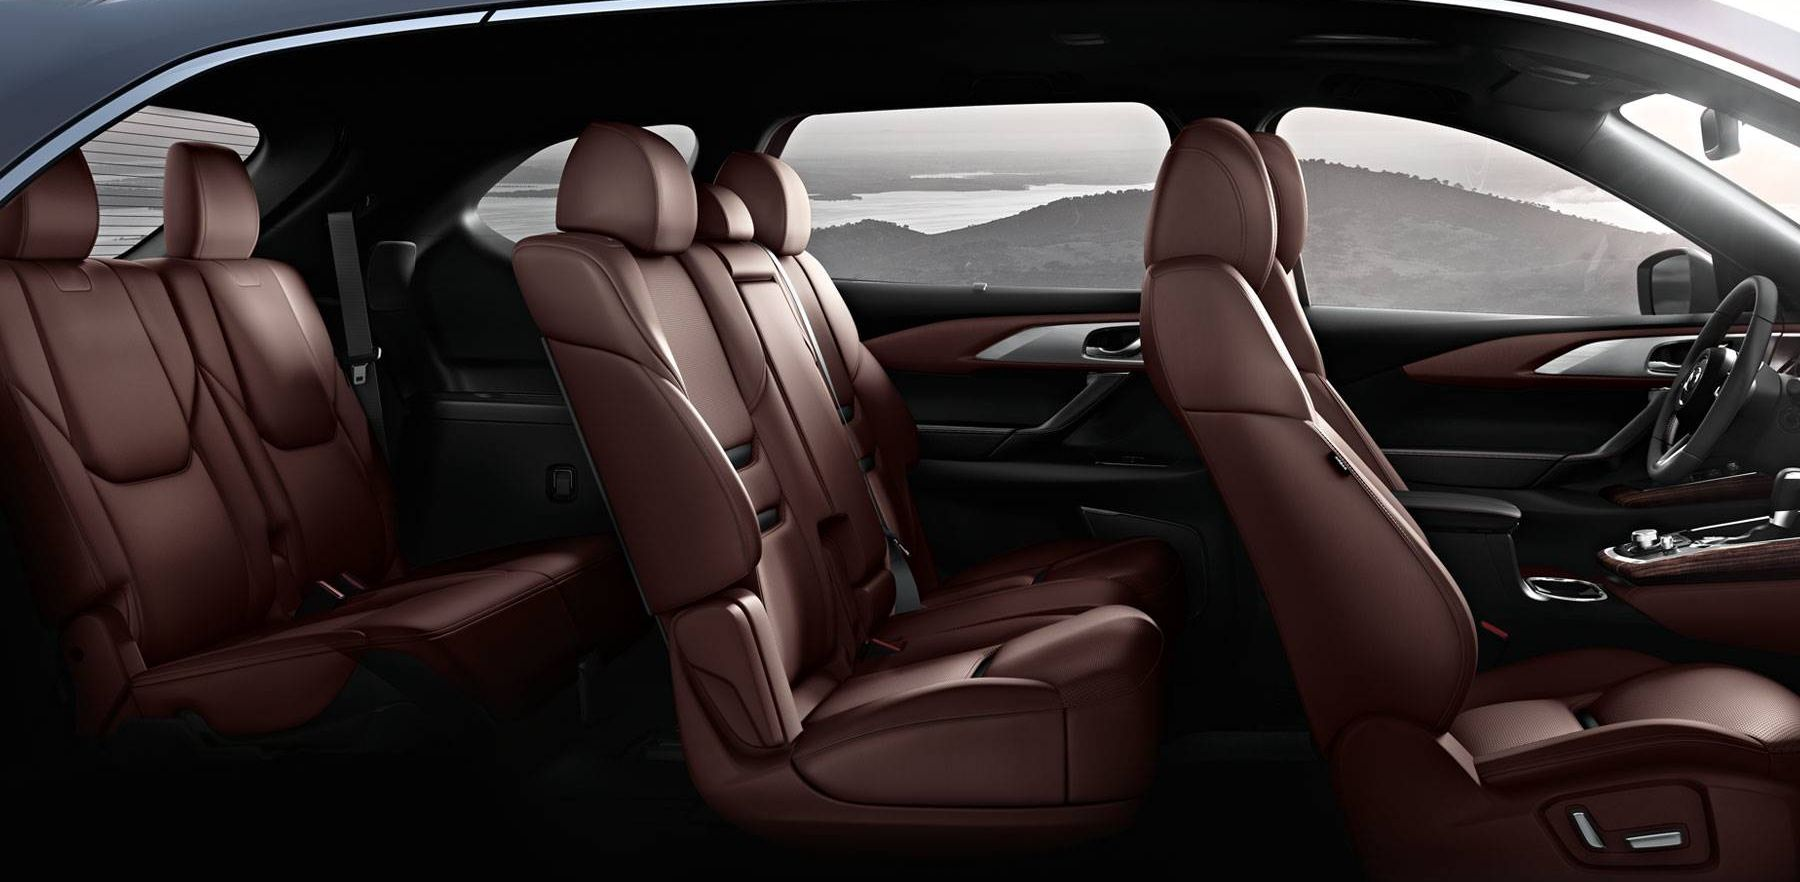 Room For All in the 2018 Mazda CX-9!